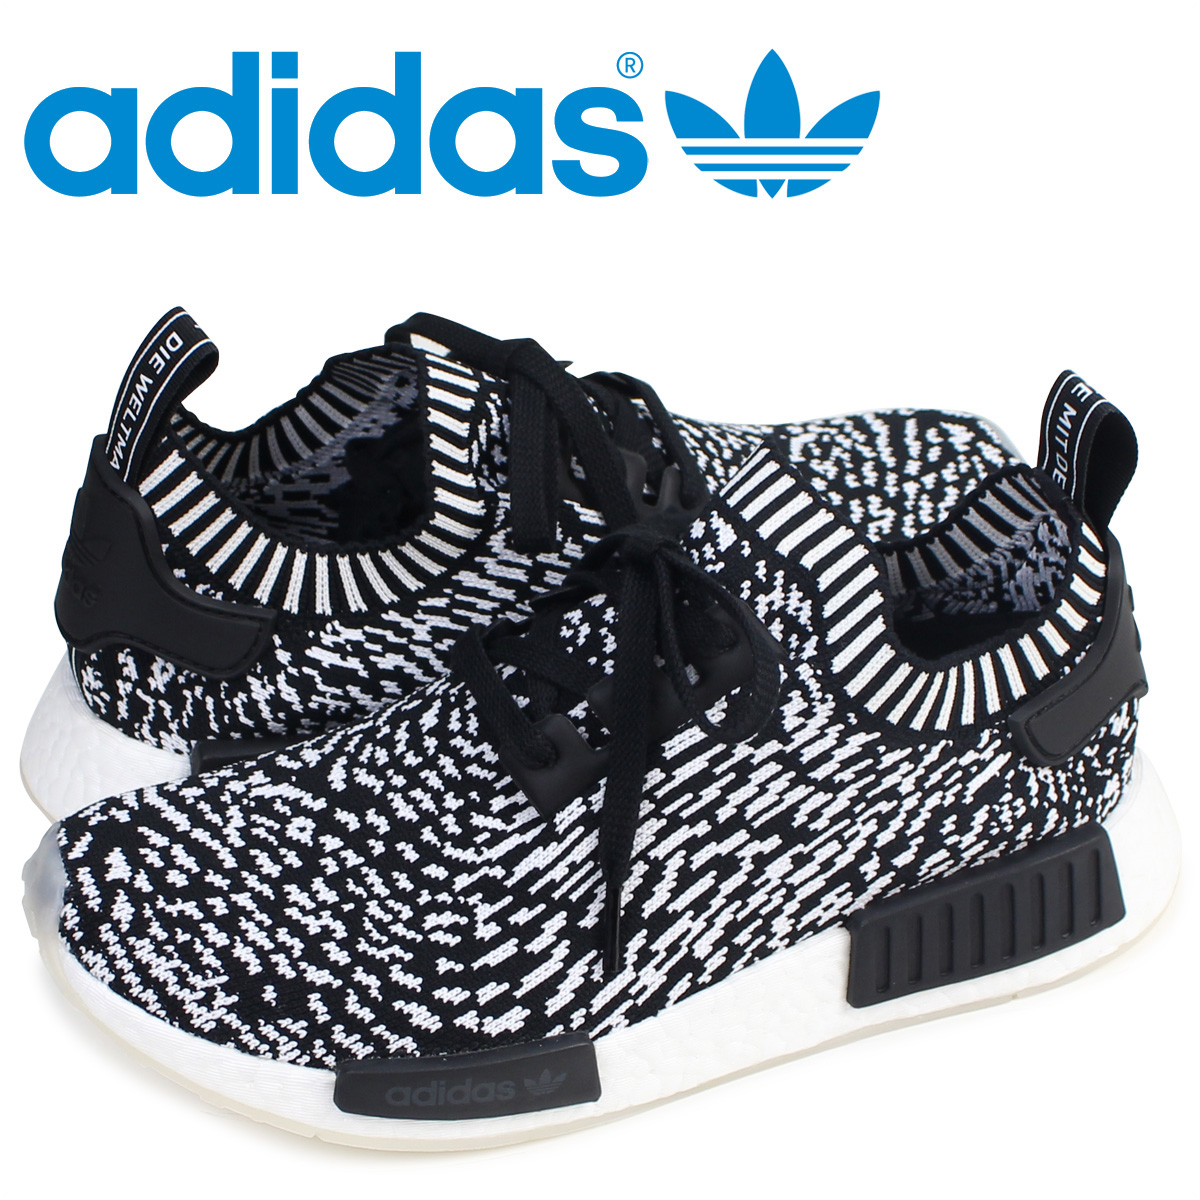 best service bbf34 a7ea9 Adidas originals adidas Originals NMD R1 PK sneakers nomad men BY3013 ZEBRA  PACK black